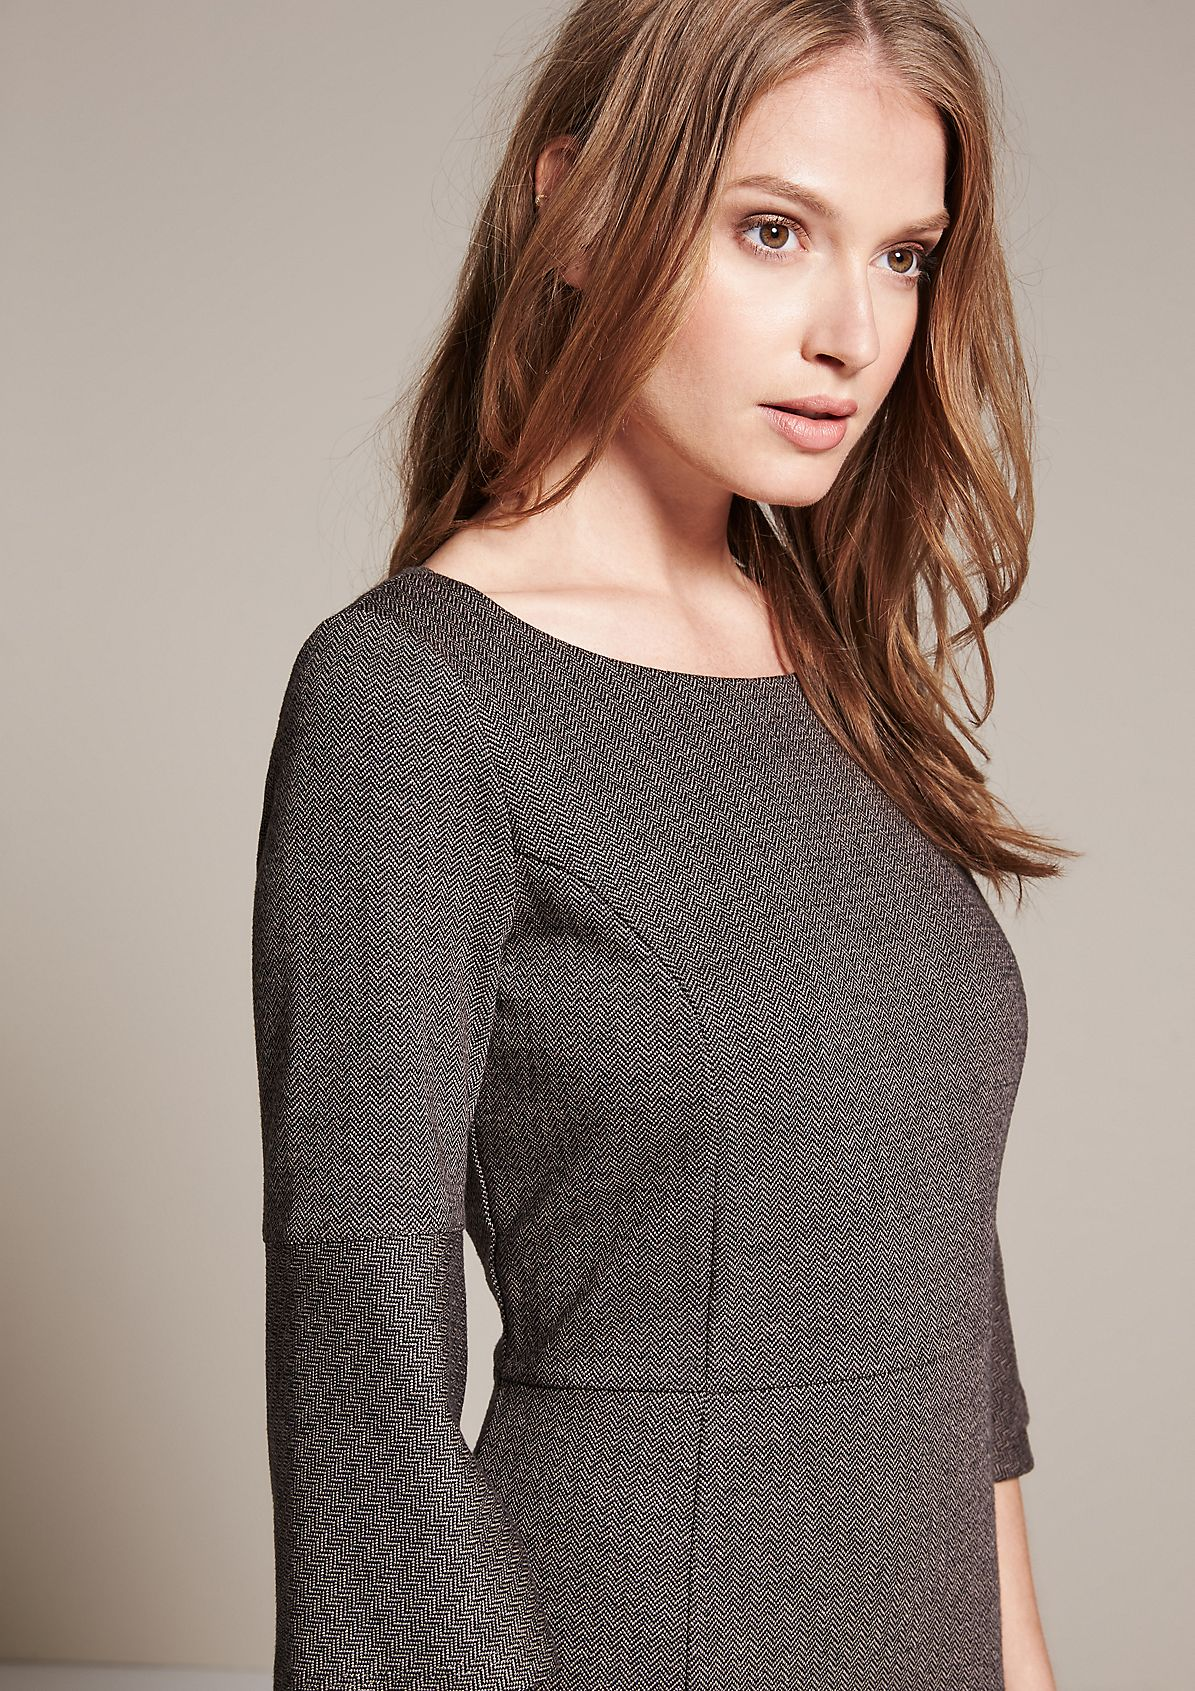 Elegant dress with 3/4-length sleeves in a tweed look from s.Oliver